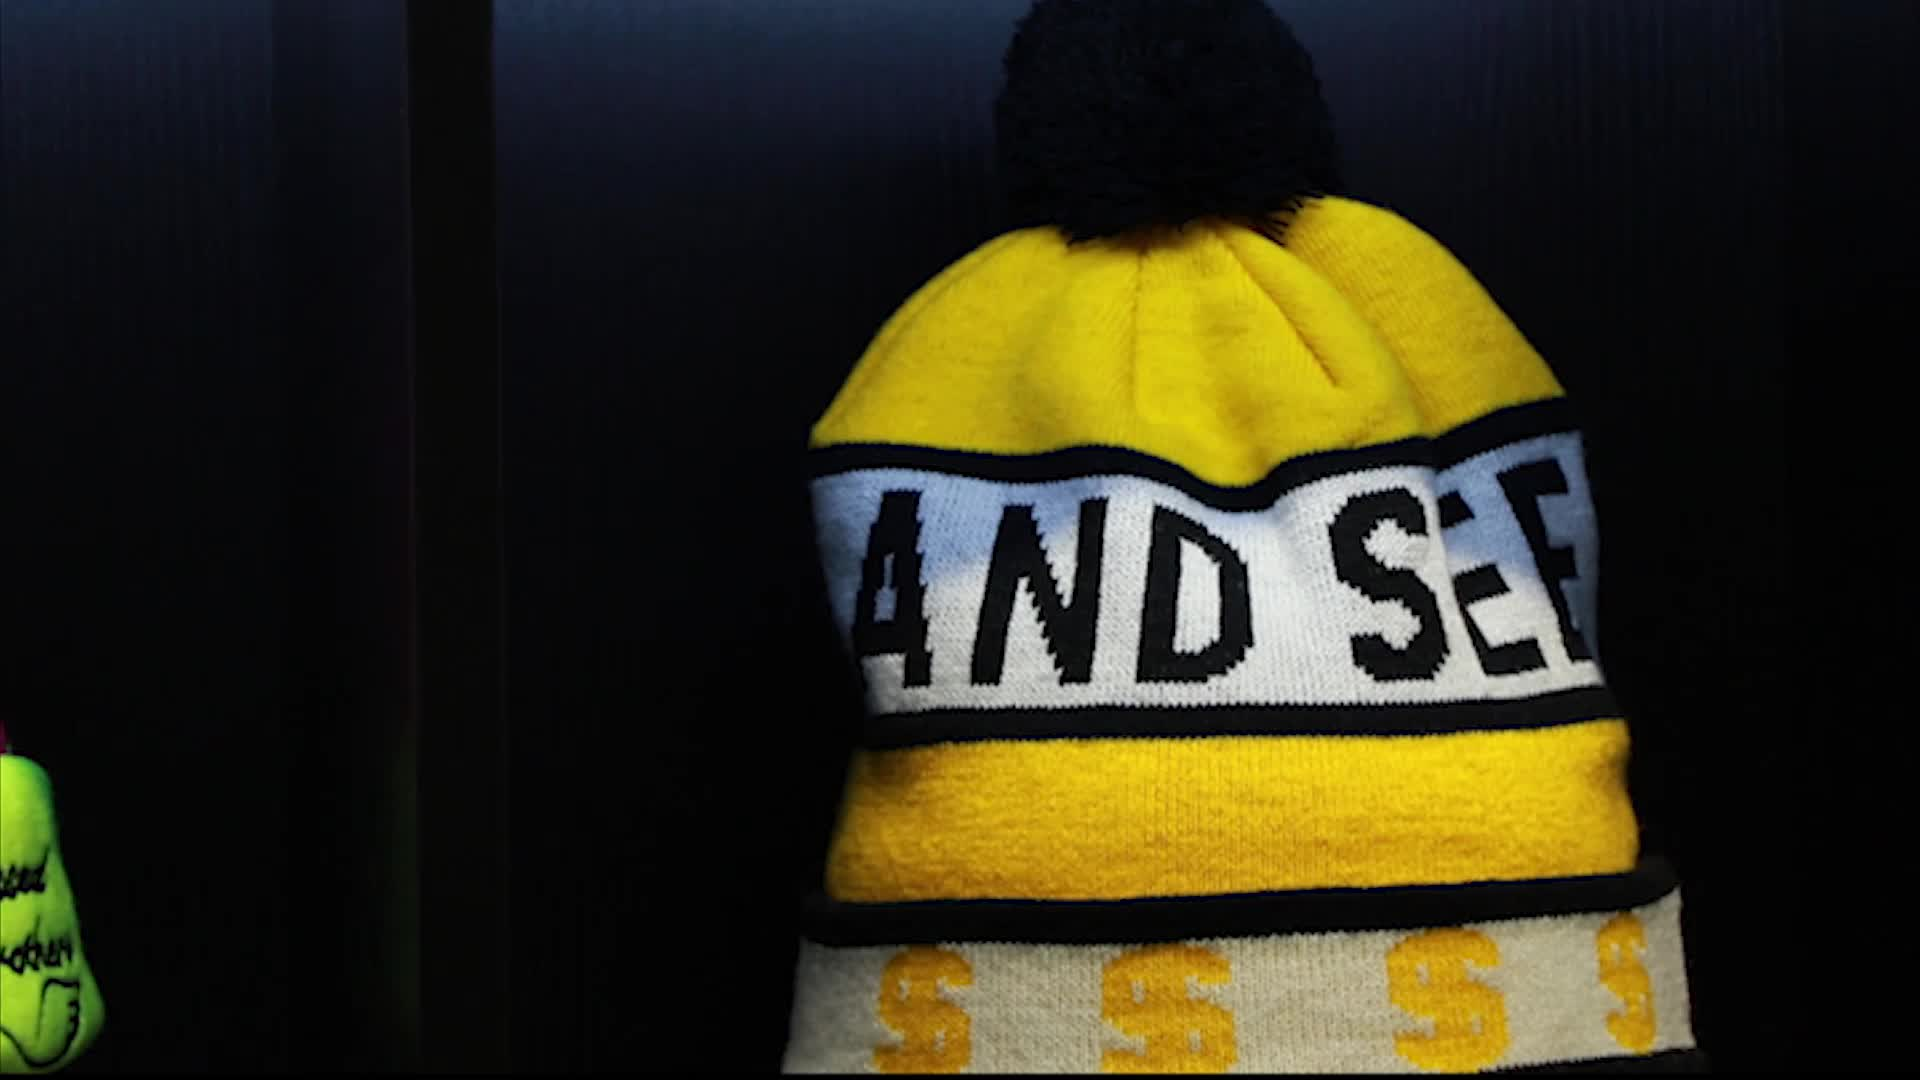 8e1d8e82a24 Knit hat styles wholesale sports flags skulls camo beanie custom knitted  toque